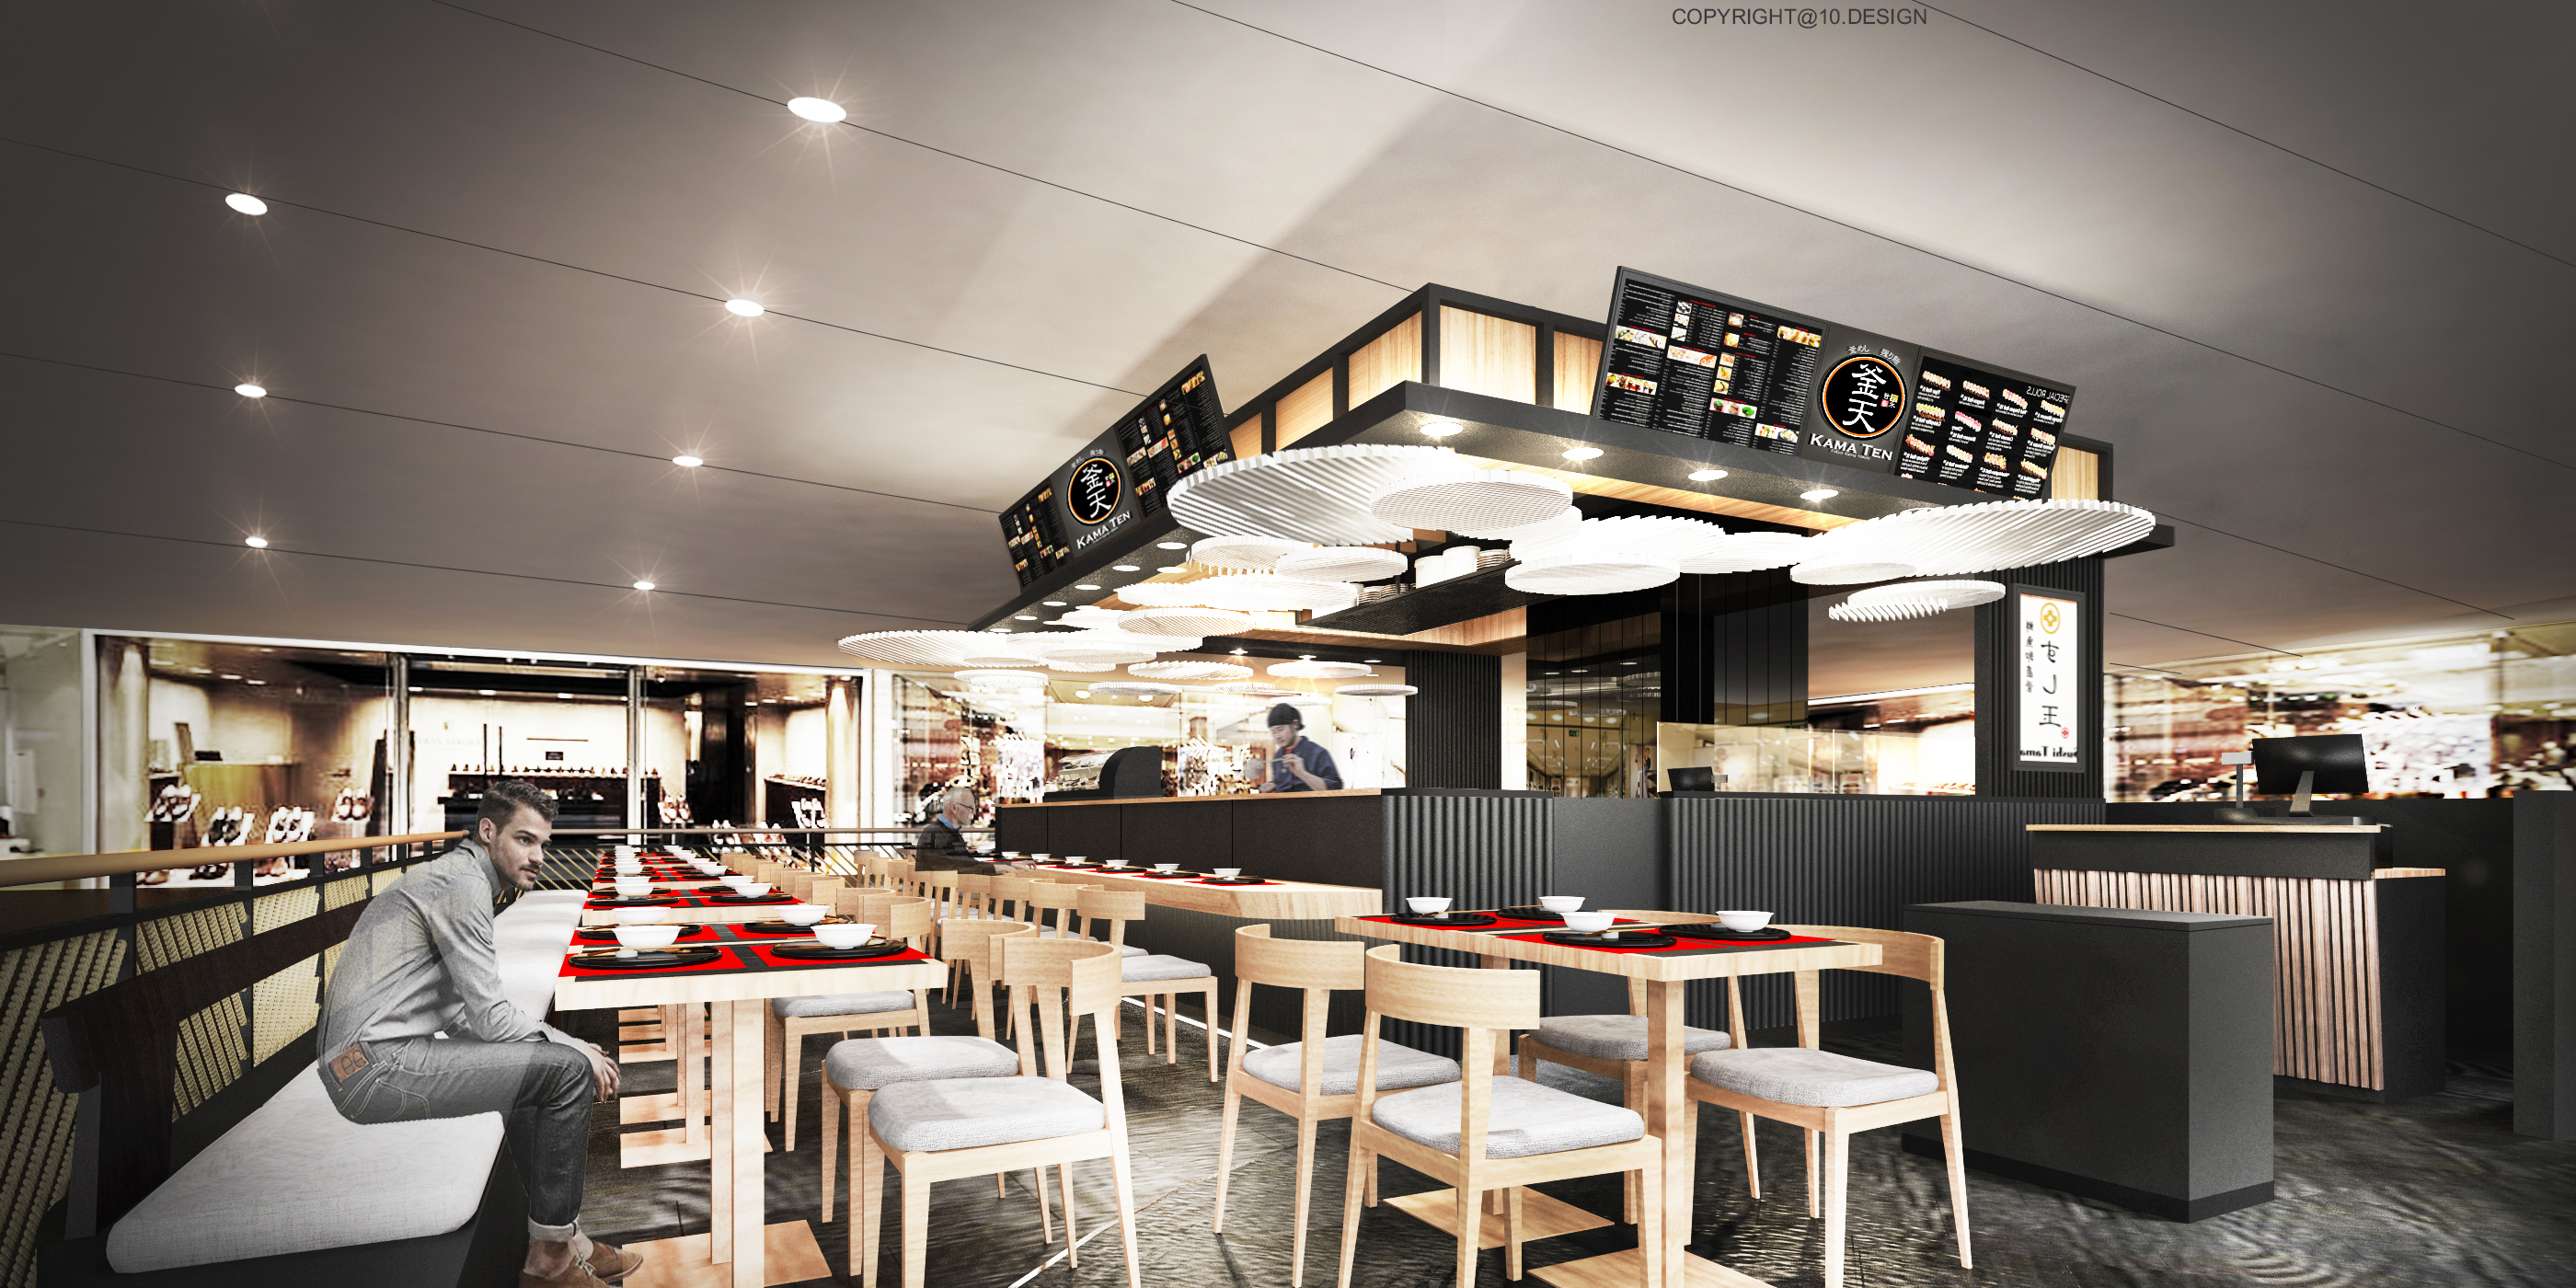 10 design kama ten japanese restaurant interior design 06